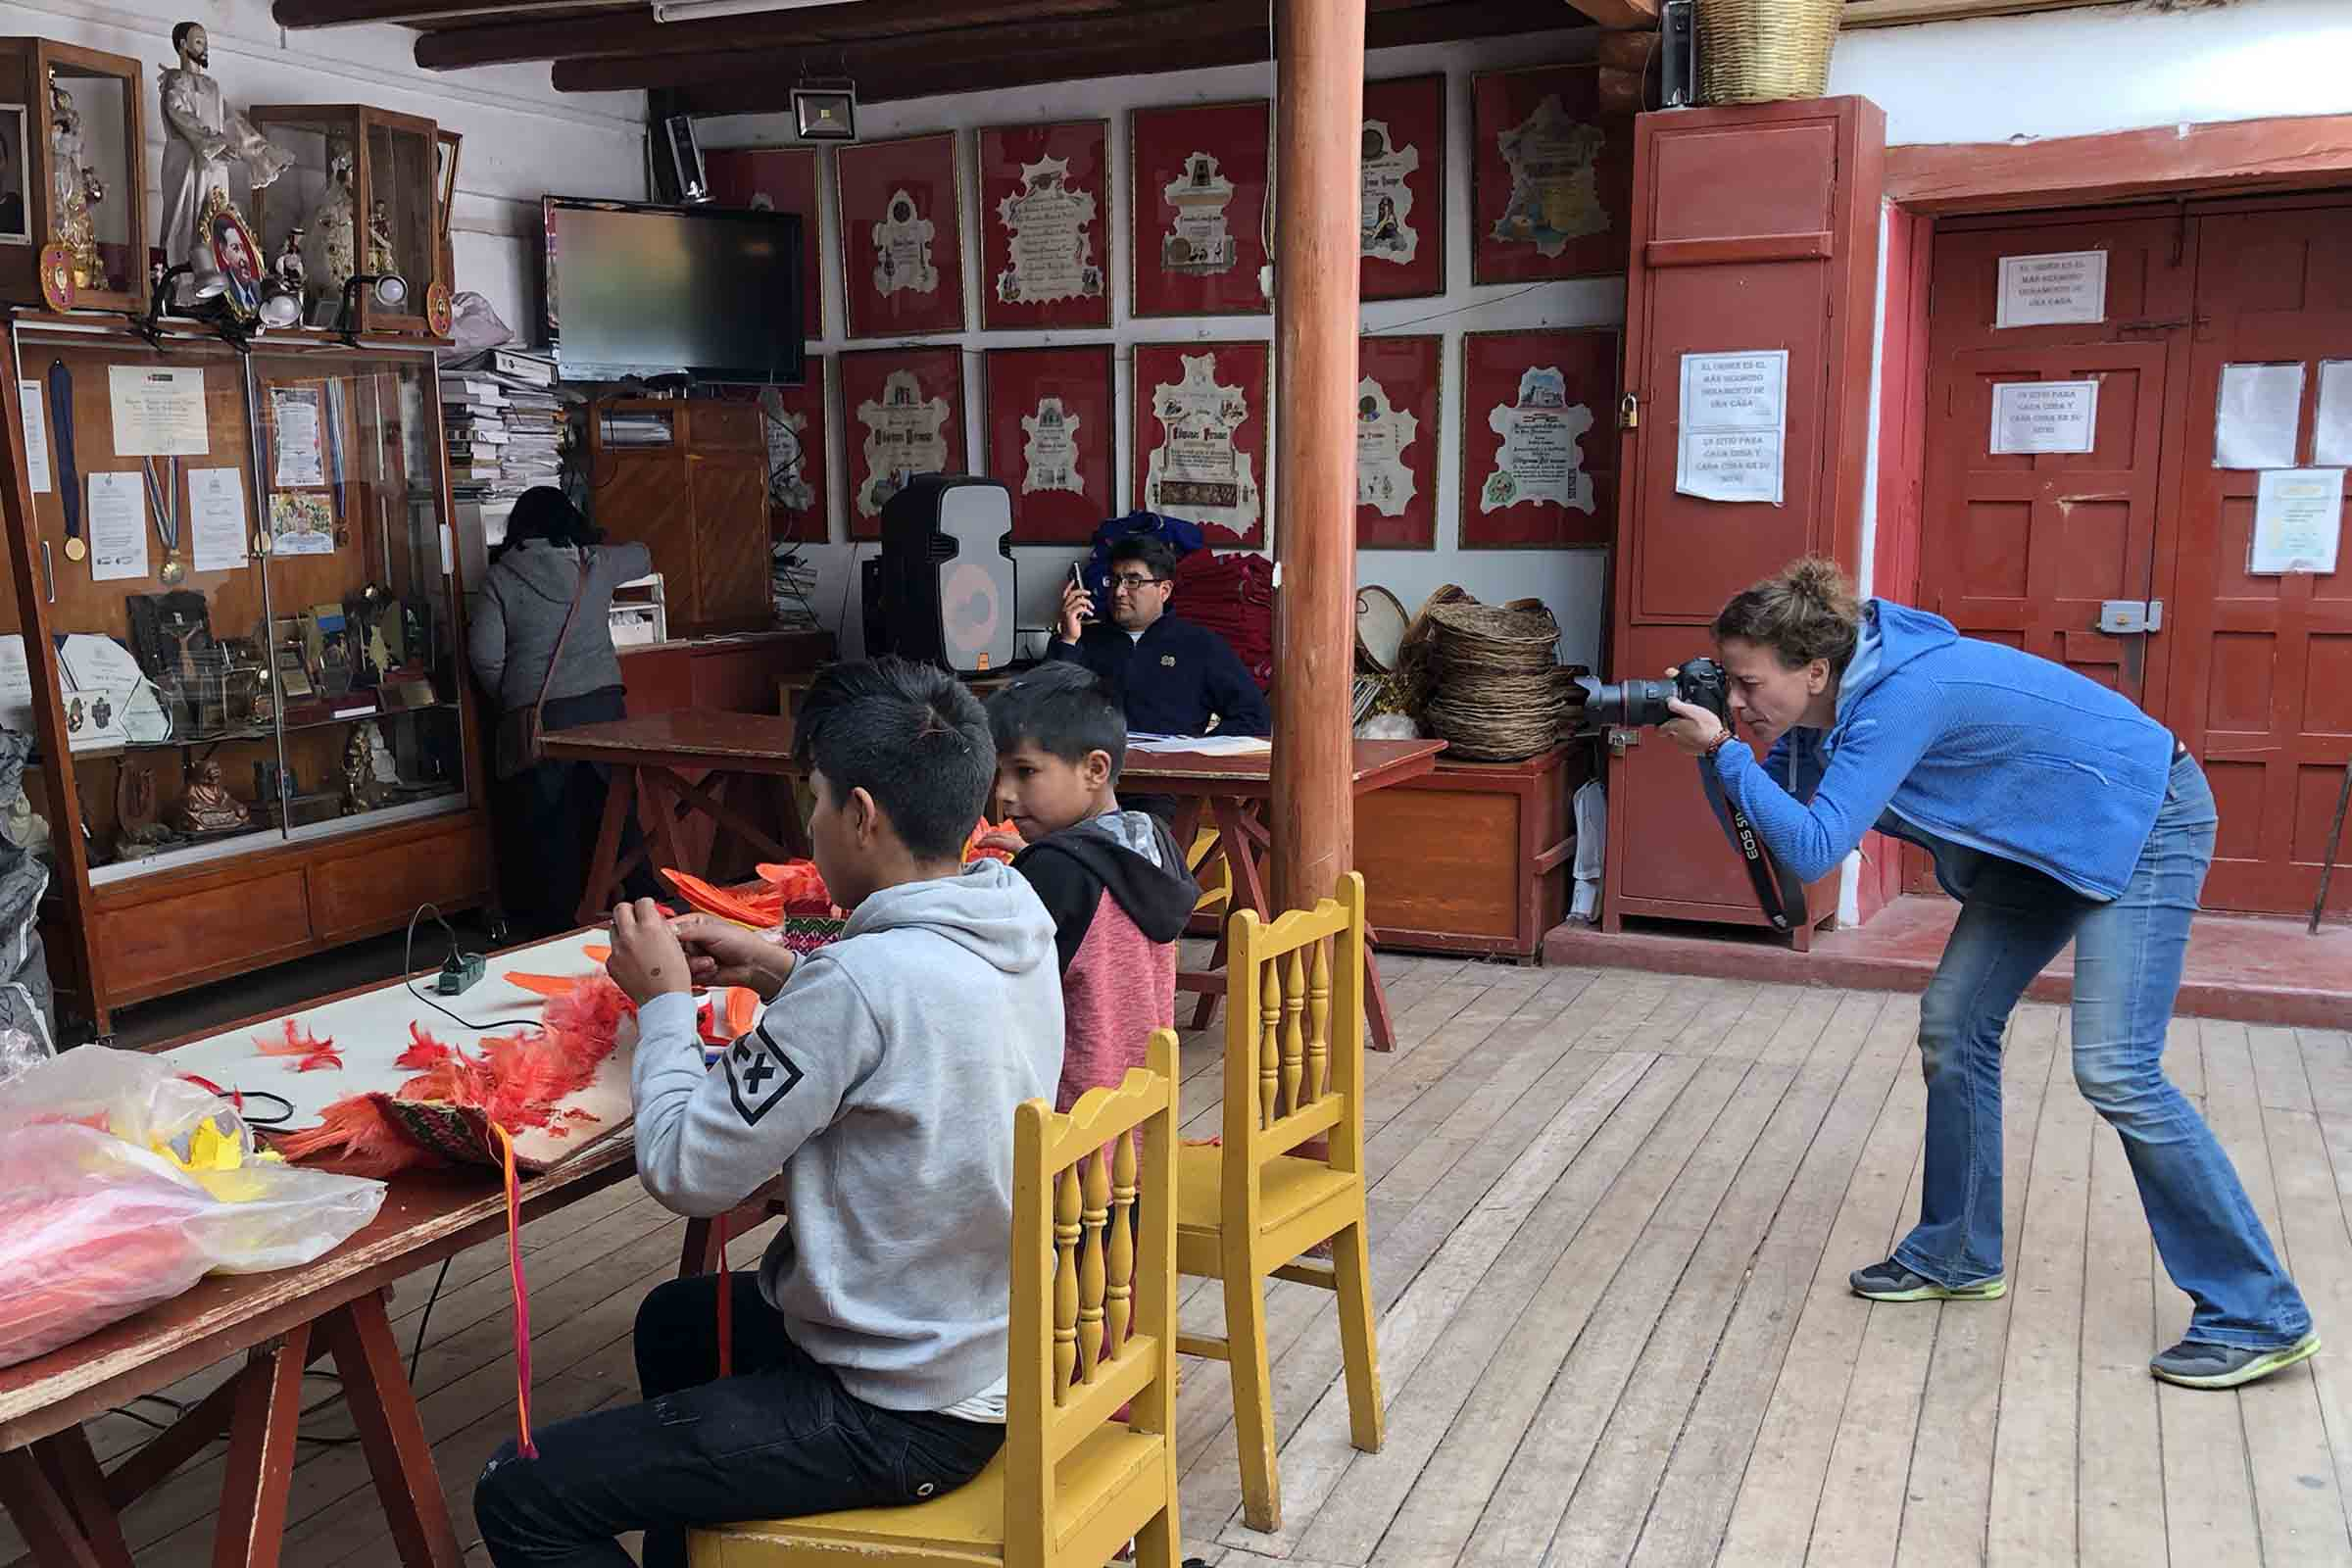 jimmy-nelson-foundation-peru-quechua-behind-the-scenes-gallery-34